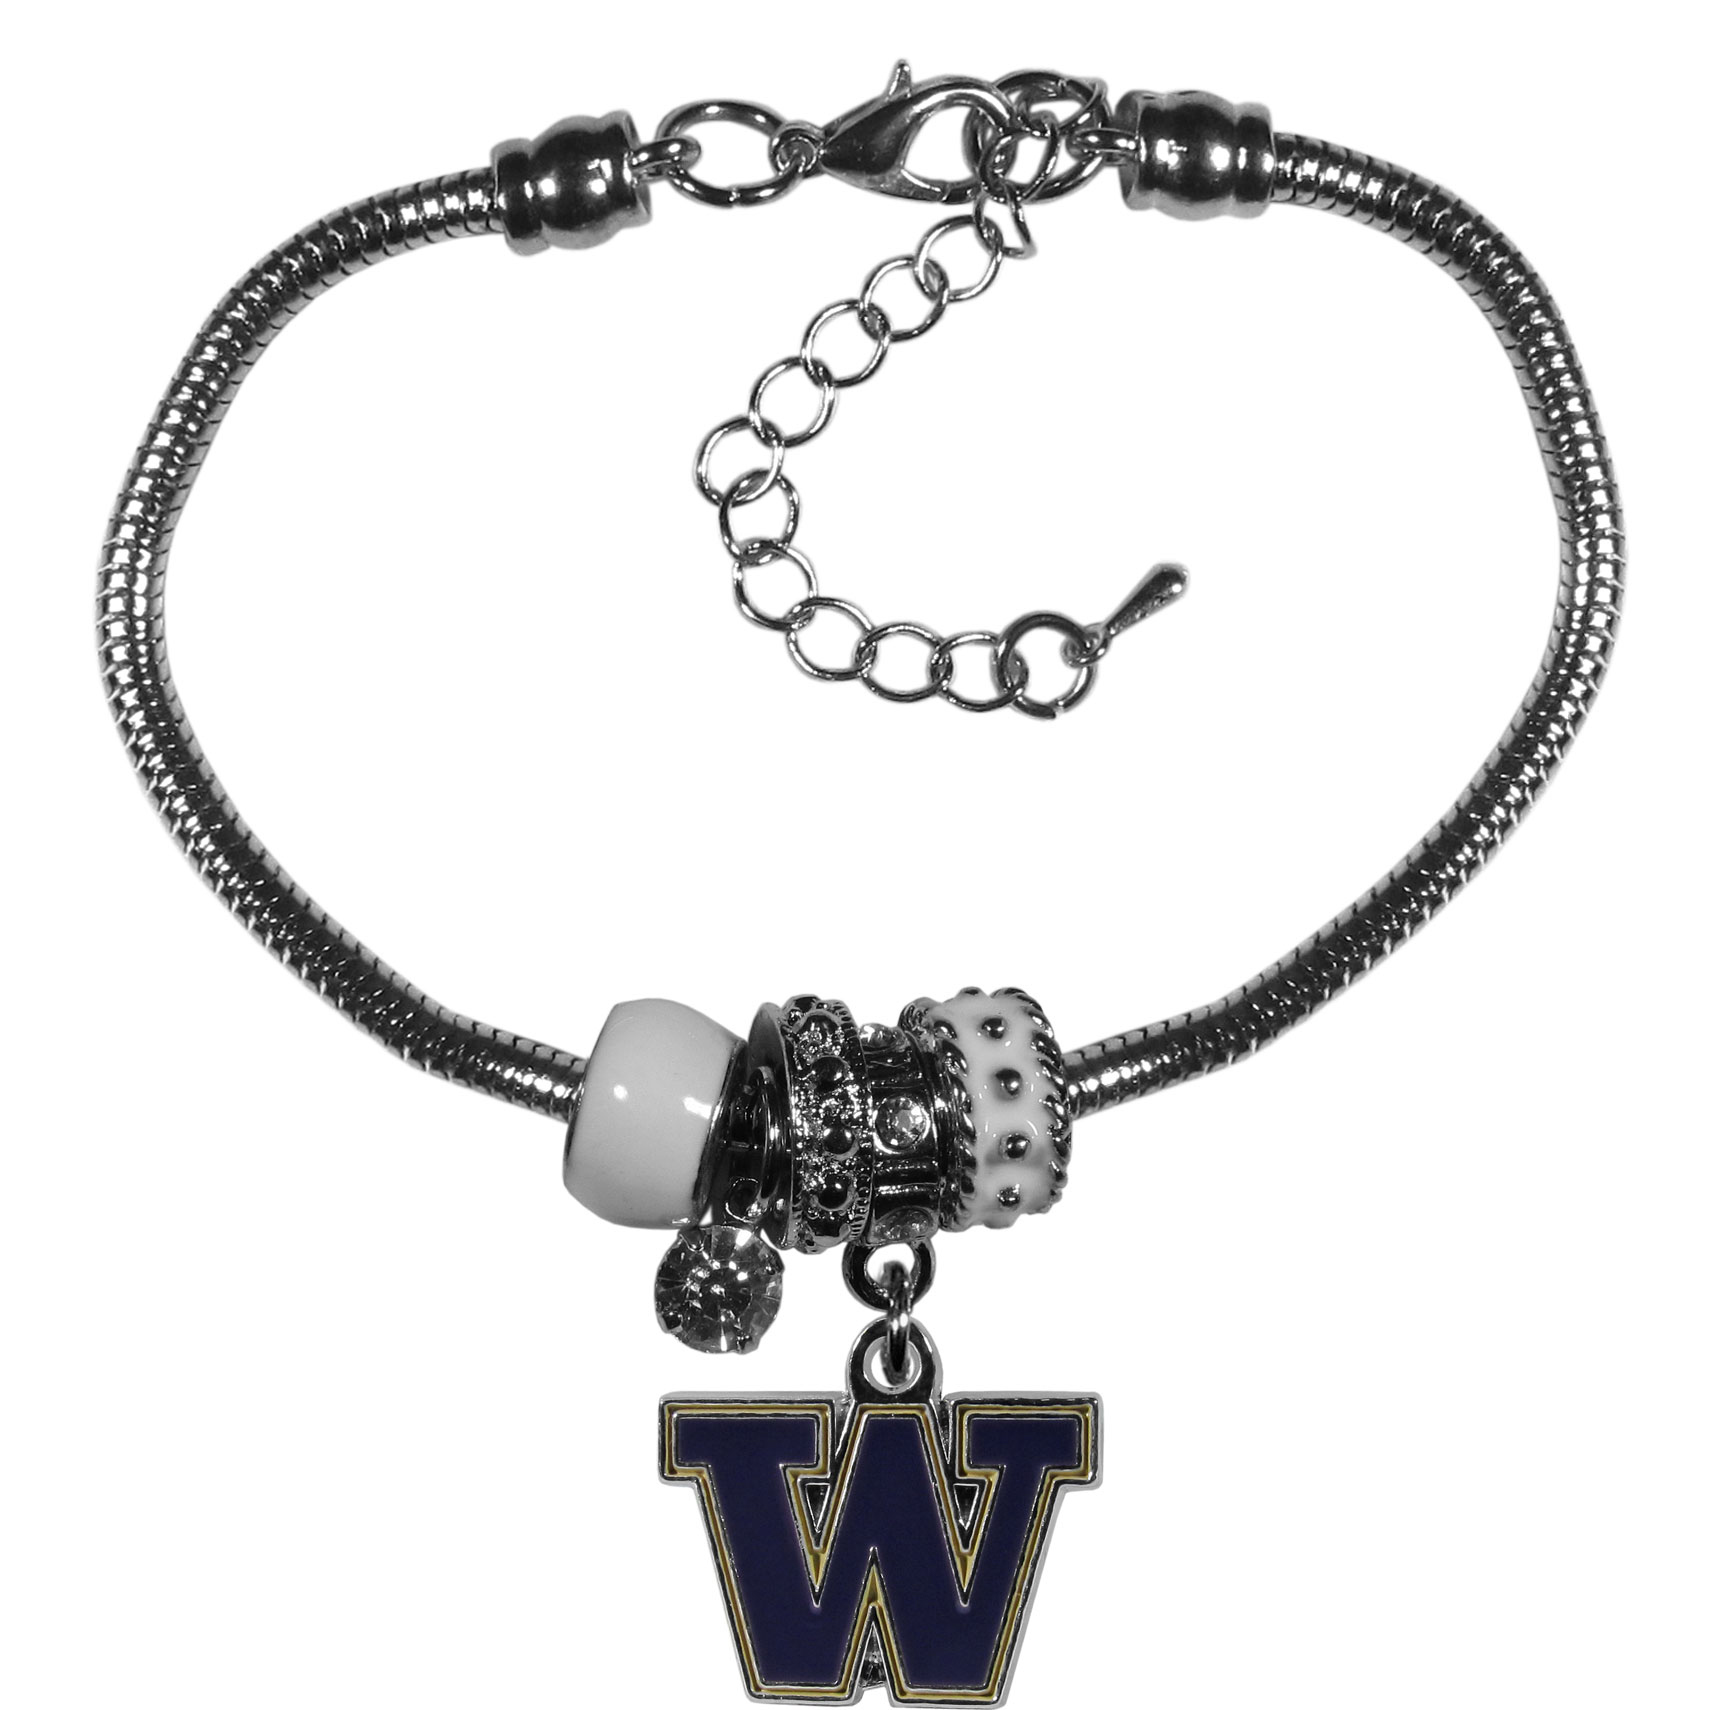 Washington Huskies Euro Bead Bracelet - We have combined the wildly popular Euro style beads with your favorite team to create our  Washington Huskies bead bracelet. The 7.5 inch snake chain with 2 inch extender features 4 Euro beads with enameled team colors and rhinestone accents with a high polish, nickel free charm and rhinestone charm. Perfect way to show off your team pride.